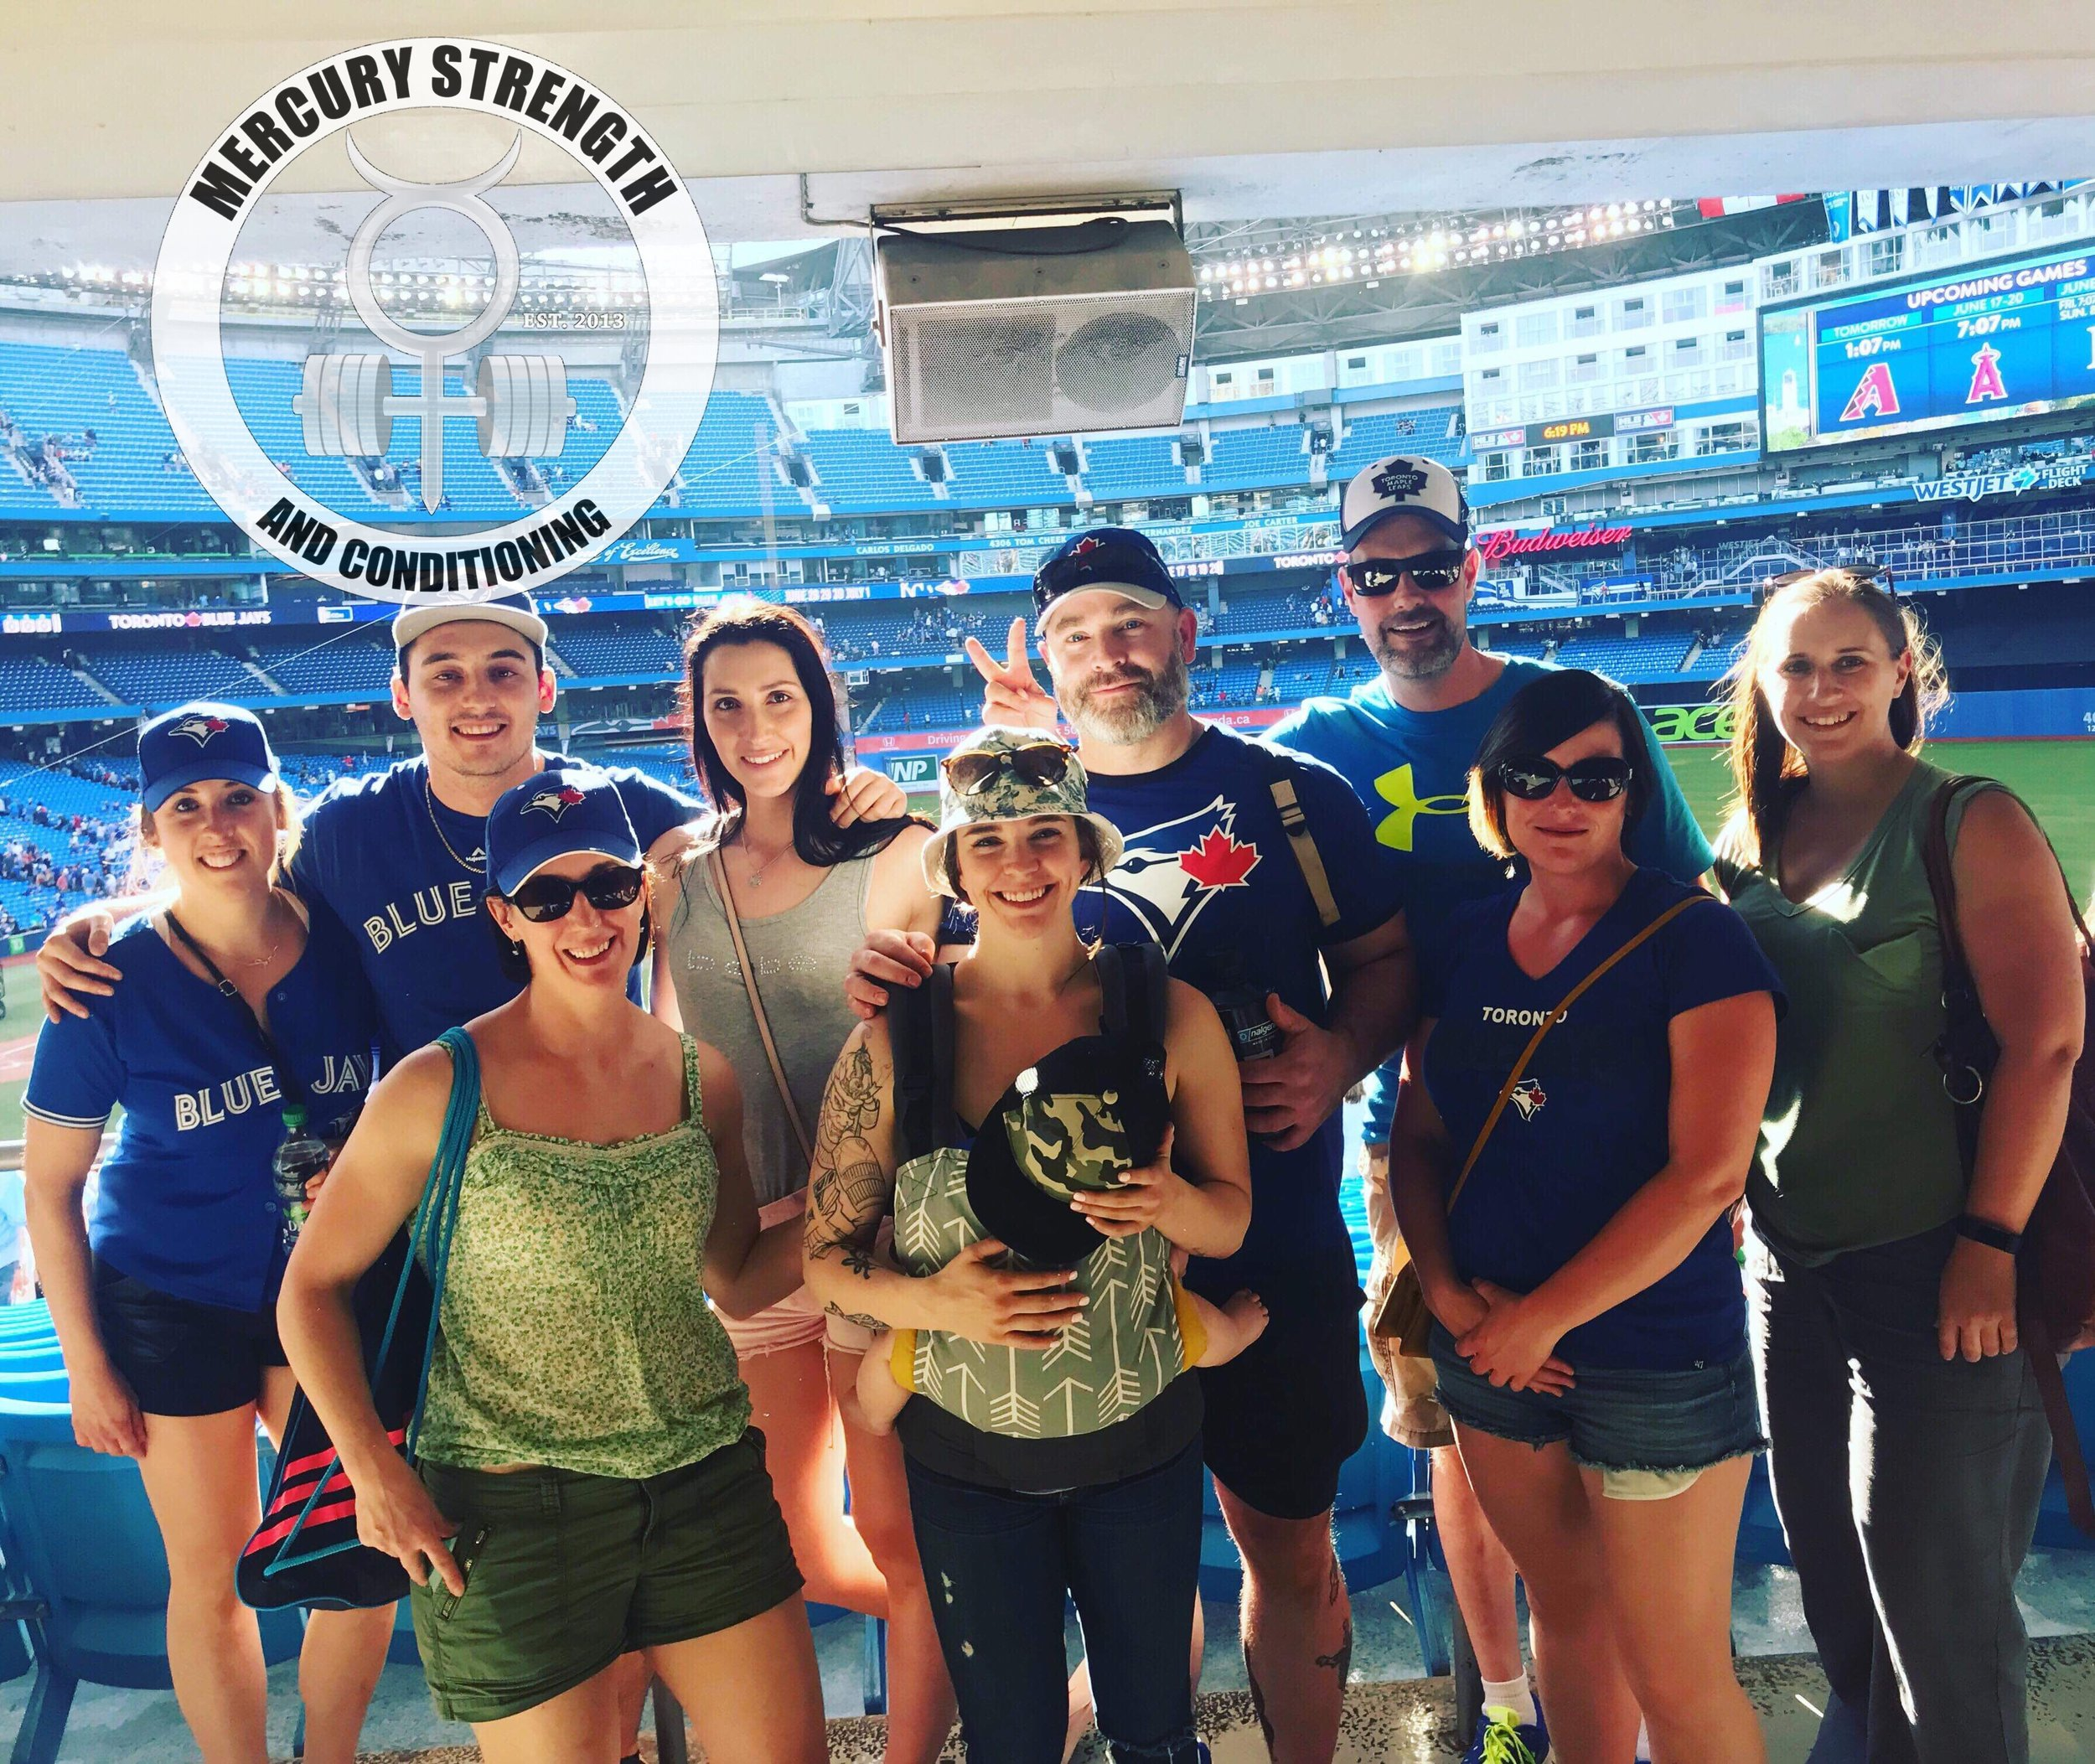 Great time at the jays game this past Saturday with a great crew! More fun excursions are on the horizon!